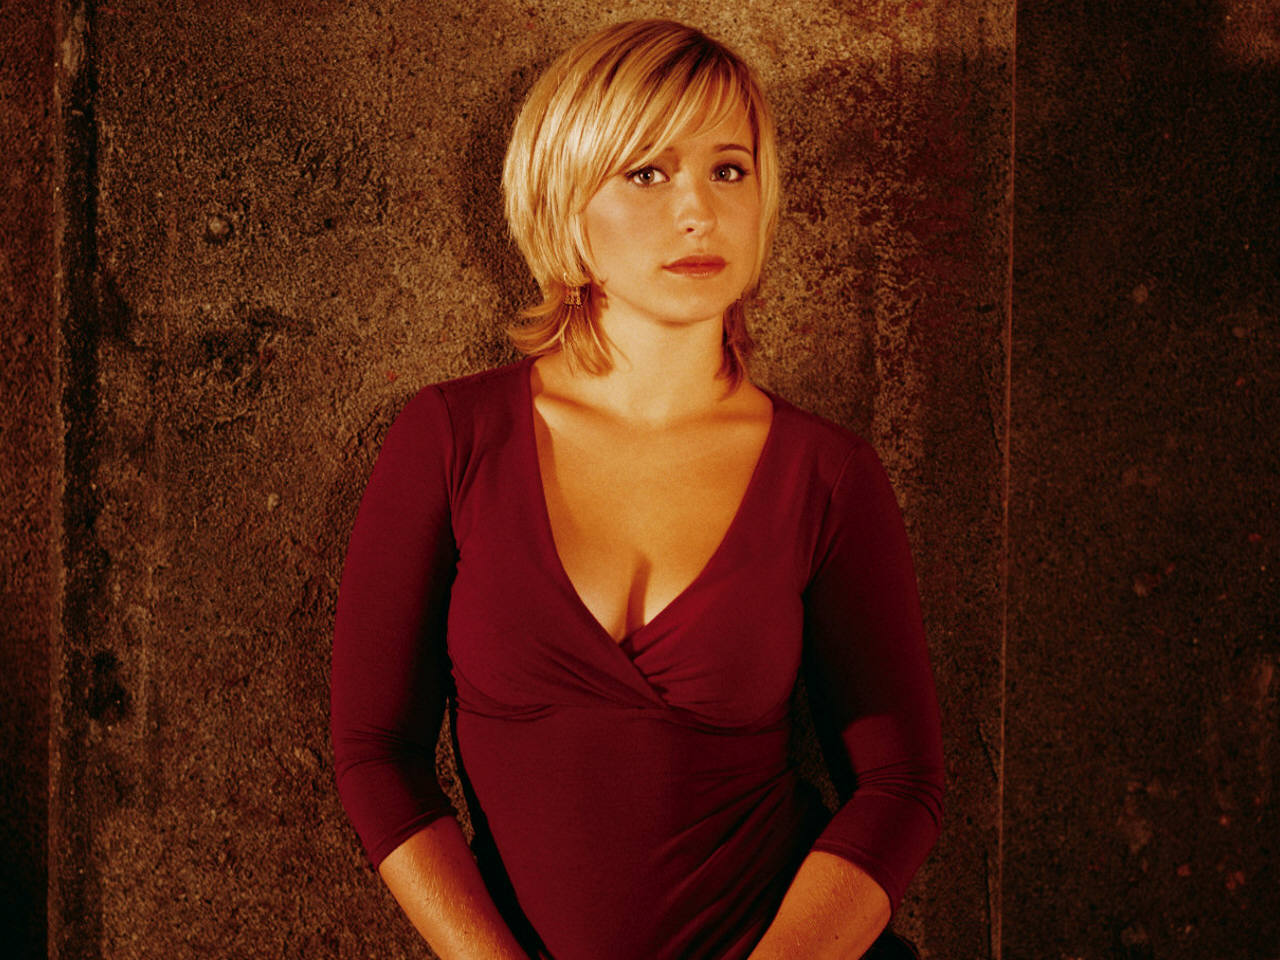 Sexy Allison Mack naked (23 foto and video), Tits, Cleavage, Instagram, legs 2006